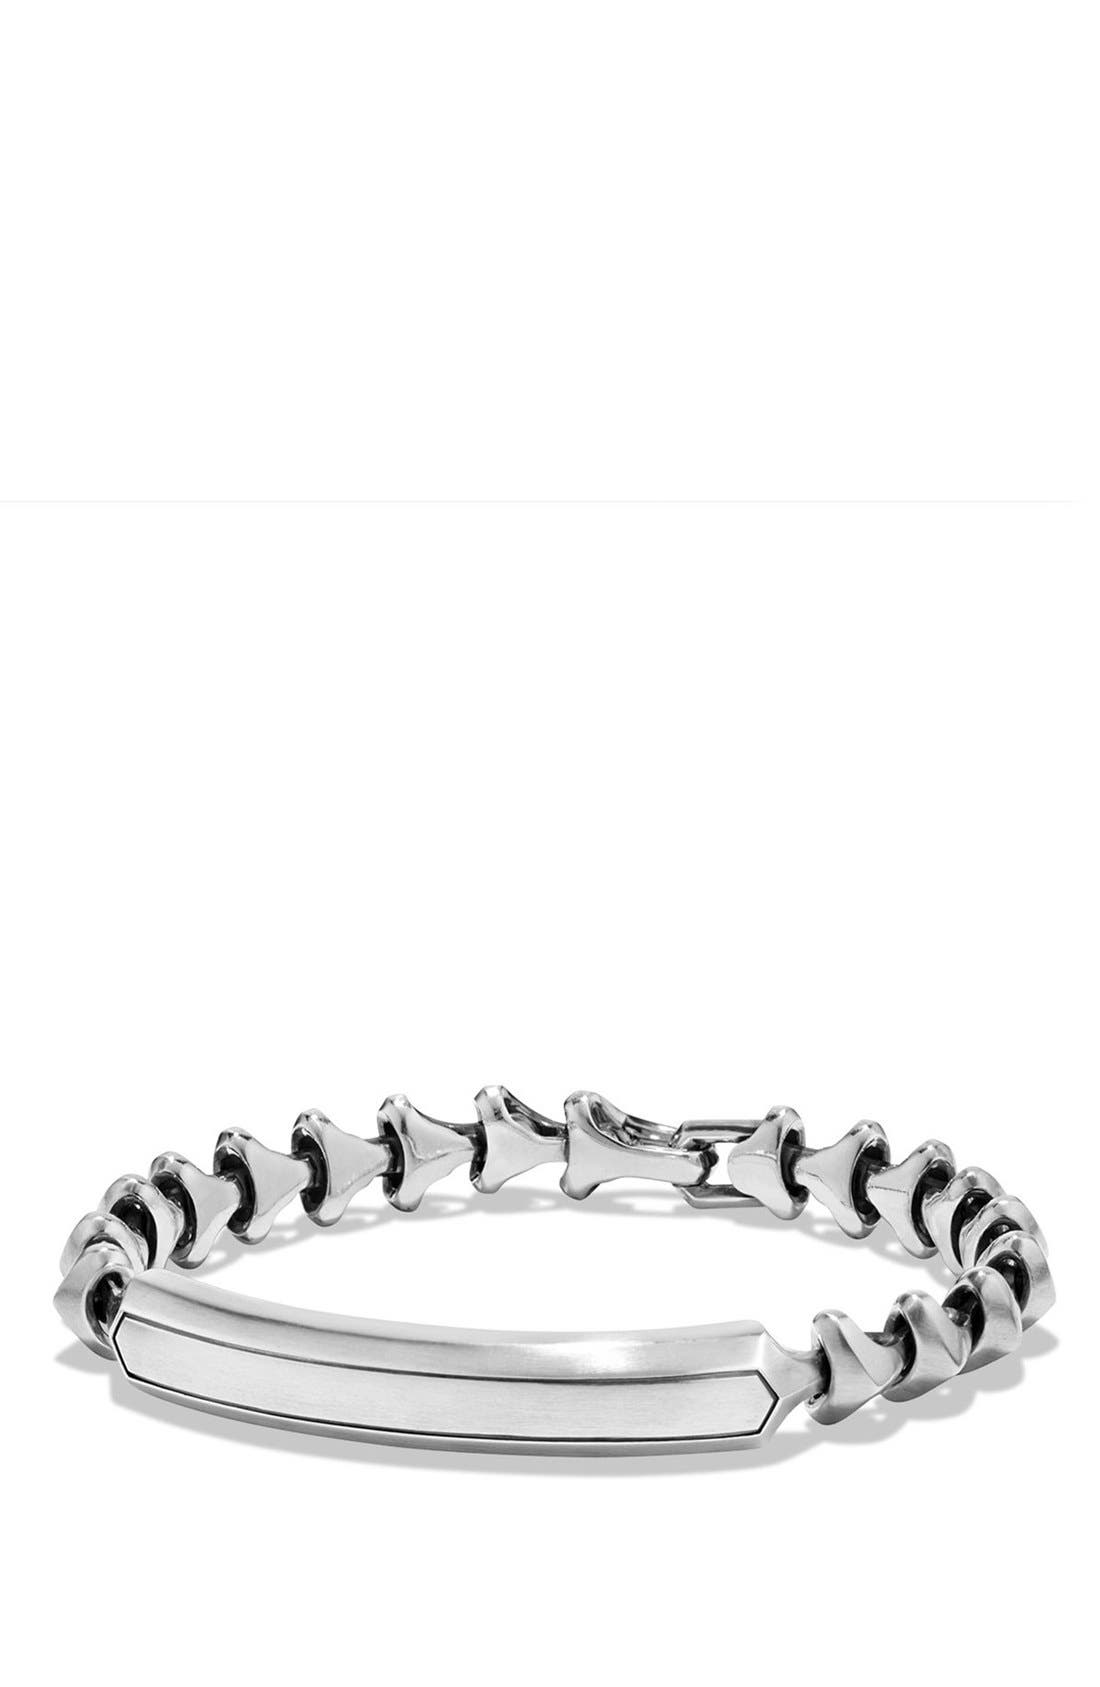 David Yurman 'Armory' Single Row ID Bracelet